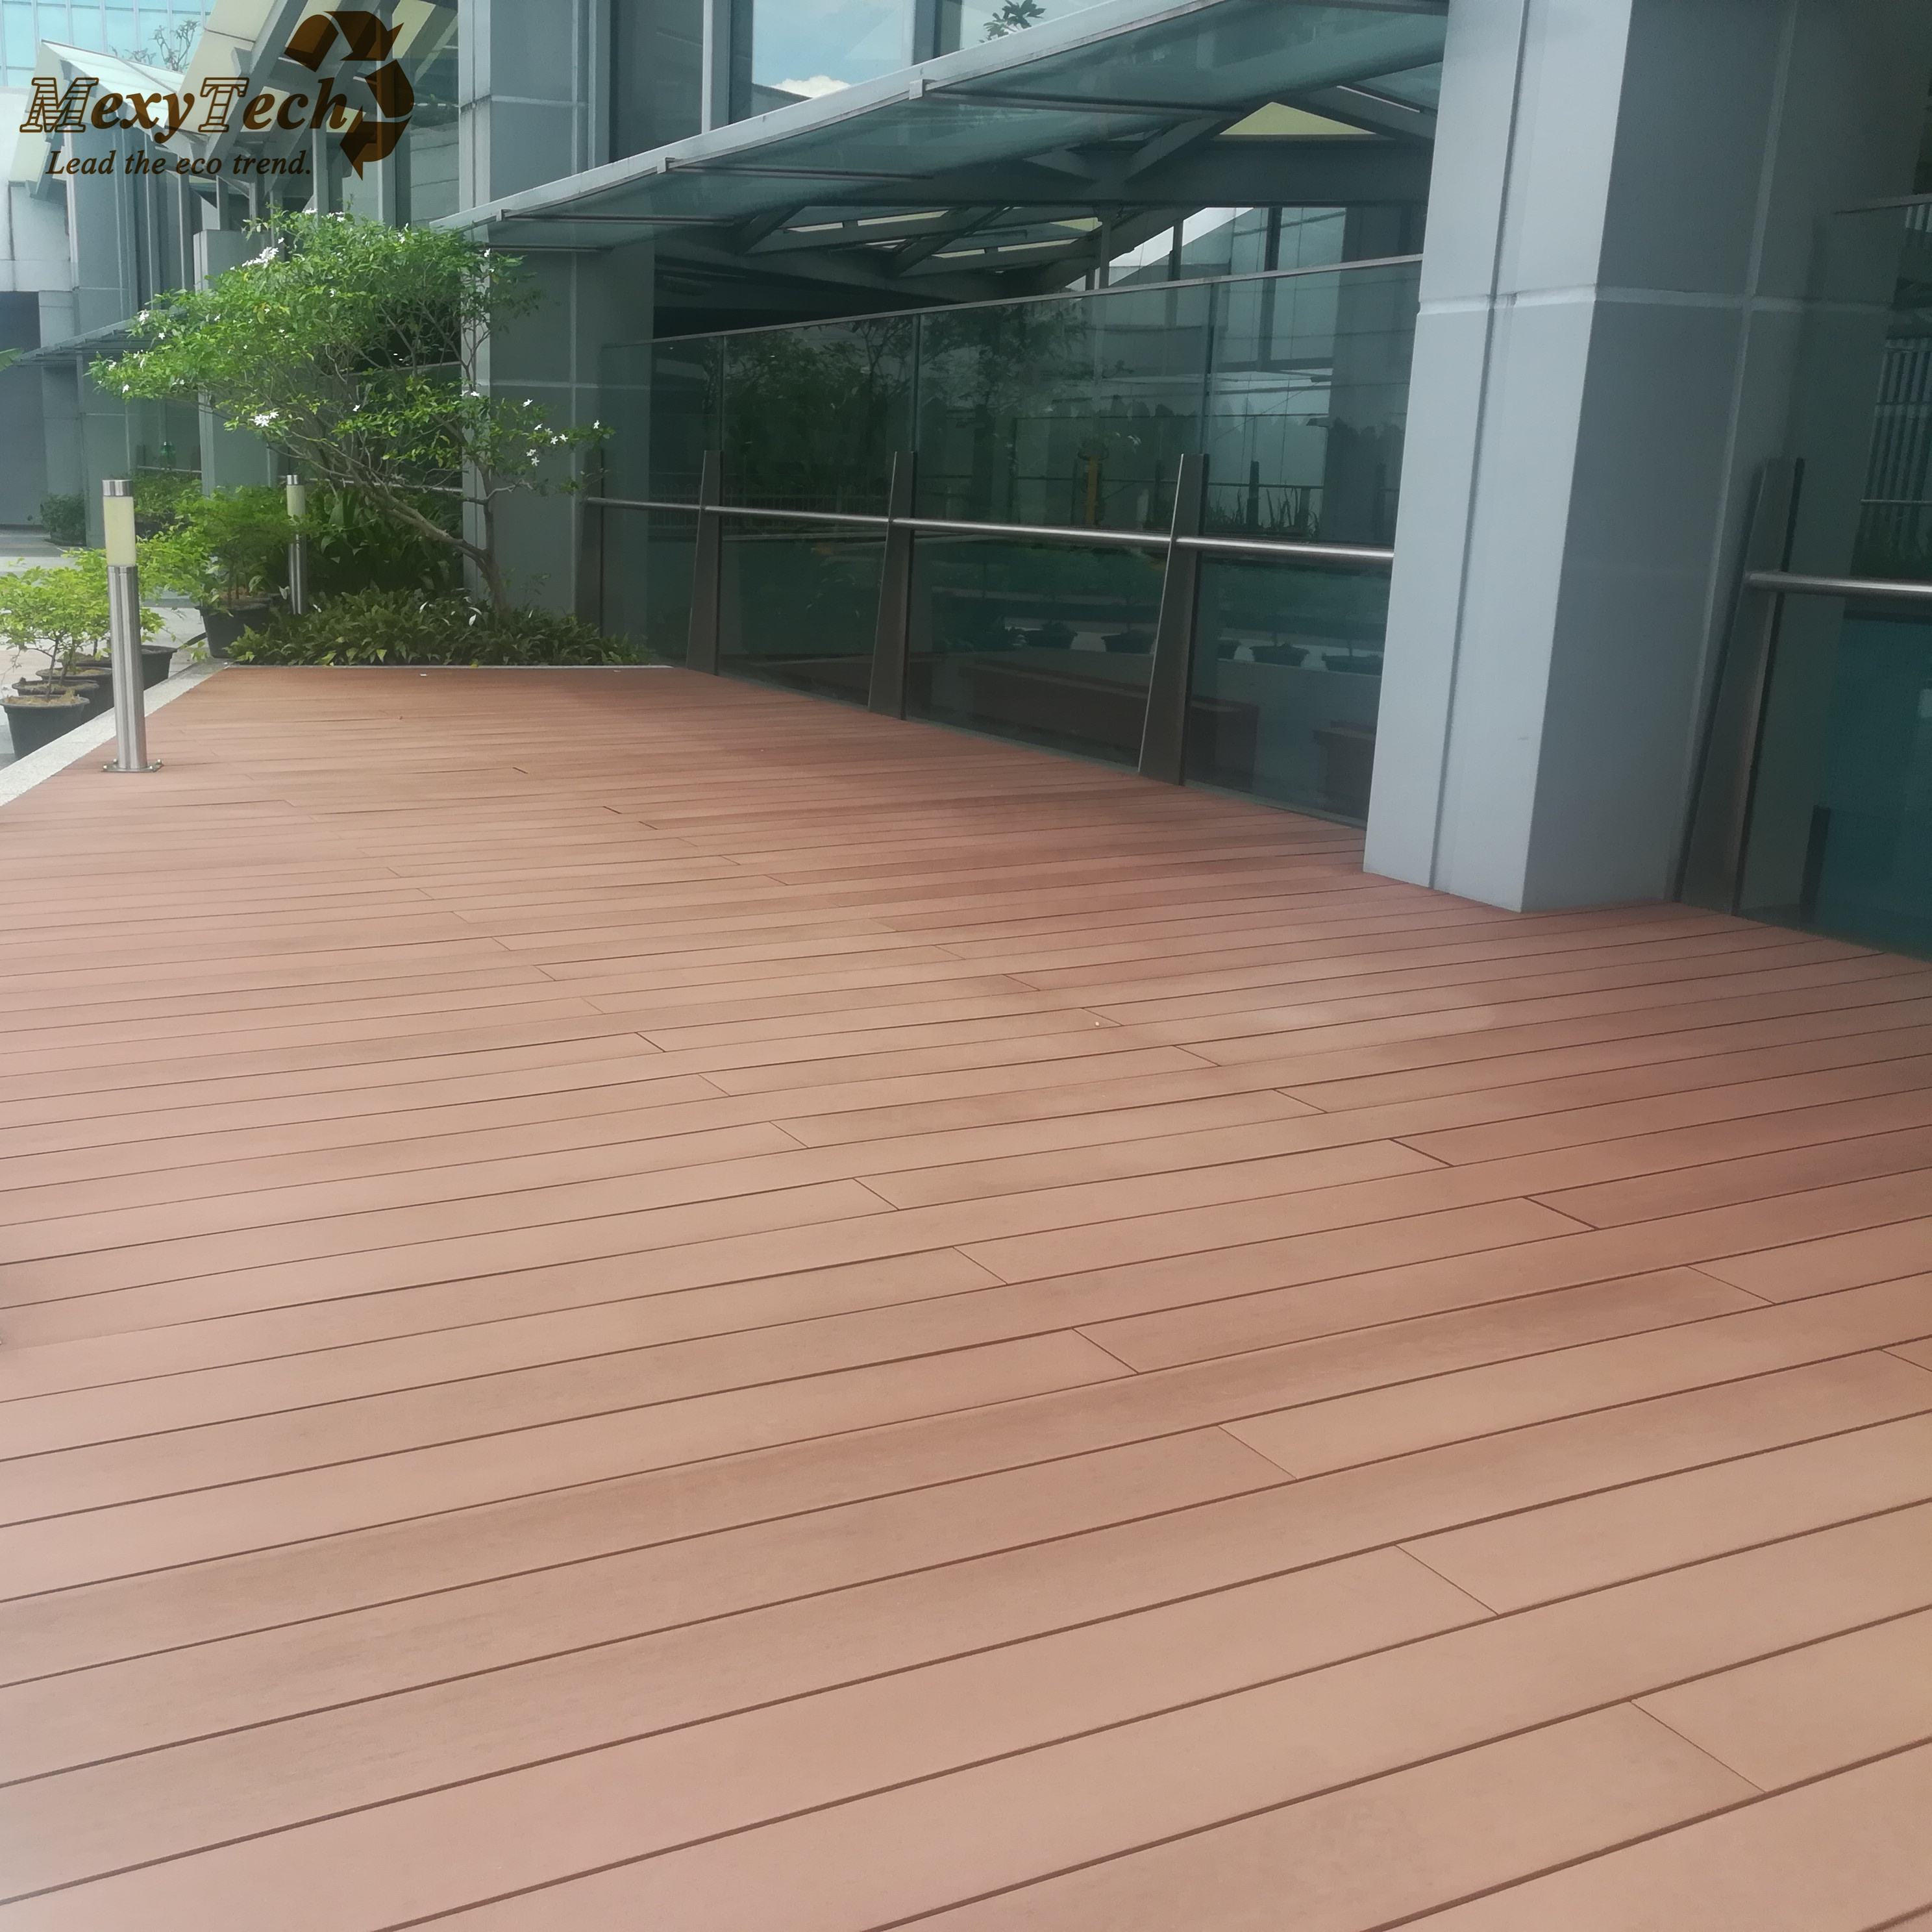 Teak Wandplank Outdoor Garden Waterproof Wpc Composite Wood Decking Plank